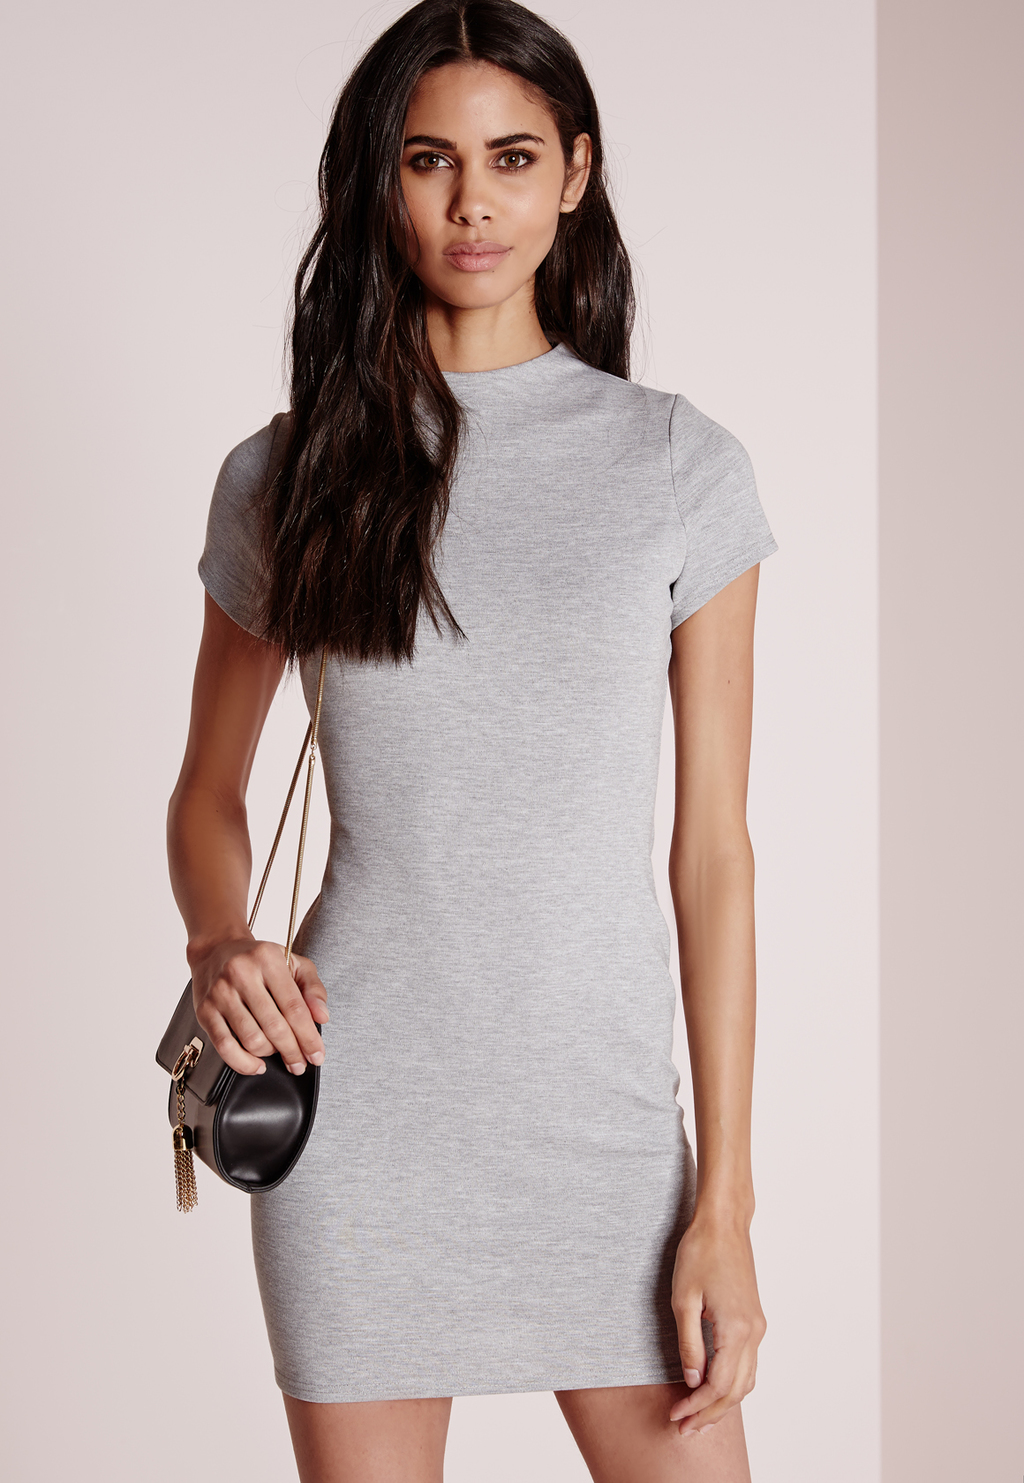 High Neck Bodycon Dress Grey Marl, Ice Grey - style: shift; length: mid thigh; pattern: plain; predominant colour: light grey; occasions: casual, evening; fit: body skimming; fibres: polyester/polyamide - stretch; neckline: crew; sleeve length: short sleeve; sleeve style: standard; pattern type: fabric; texture group: jersey - stretchy/drapey; season: a/w 2015; wardrobe: basic